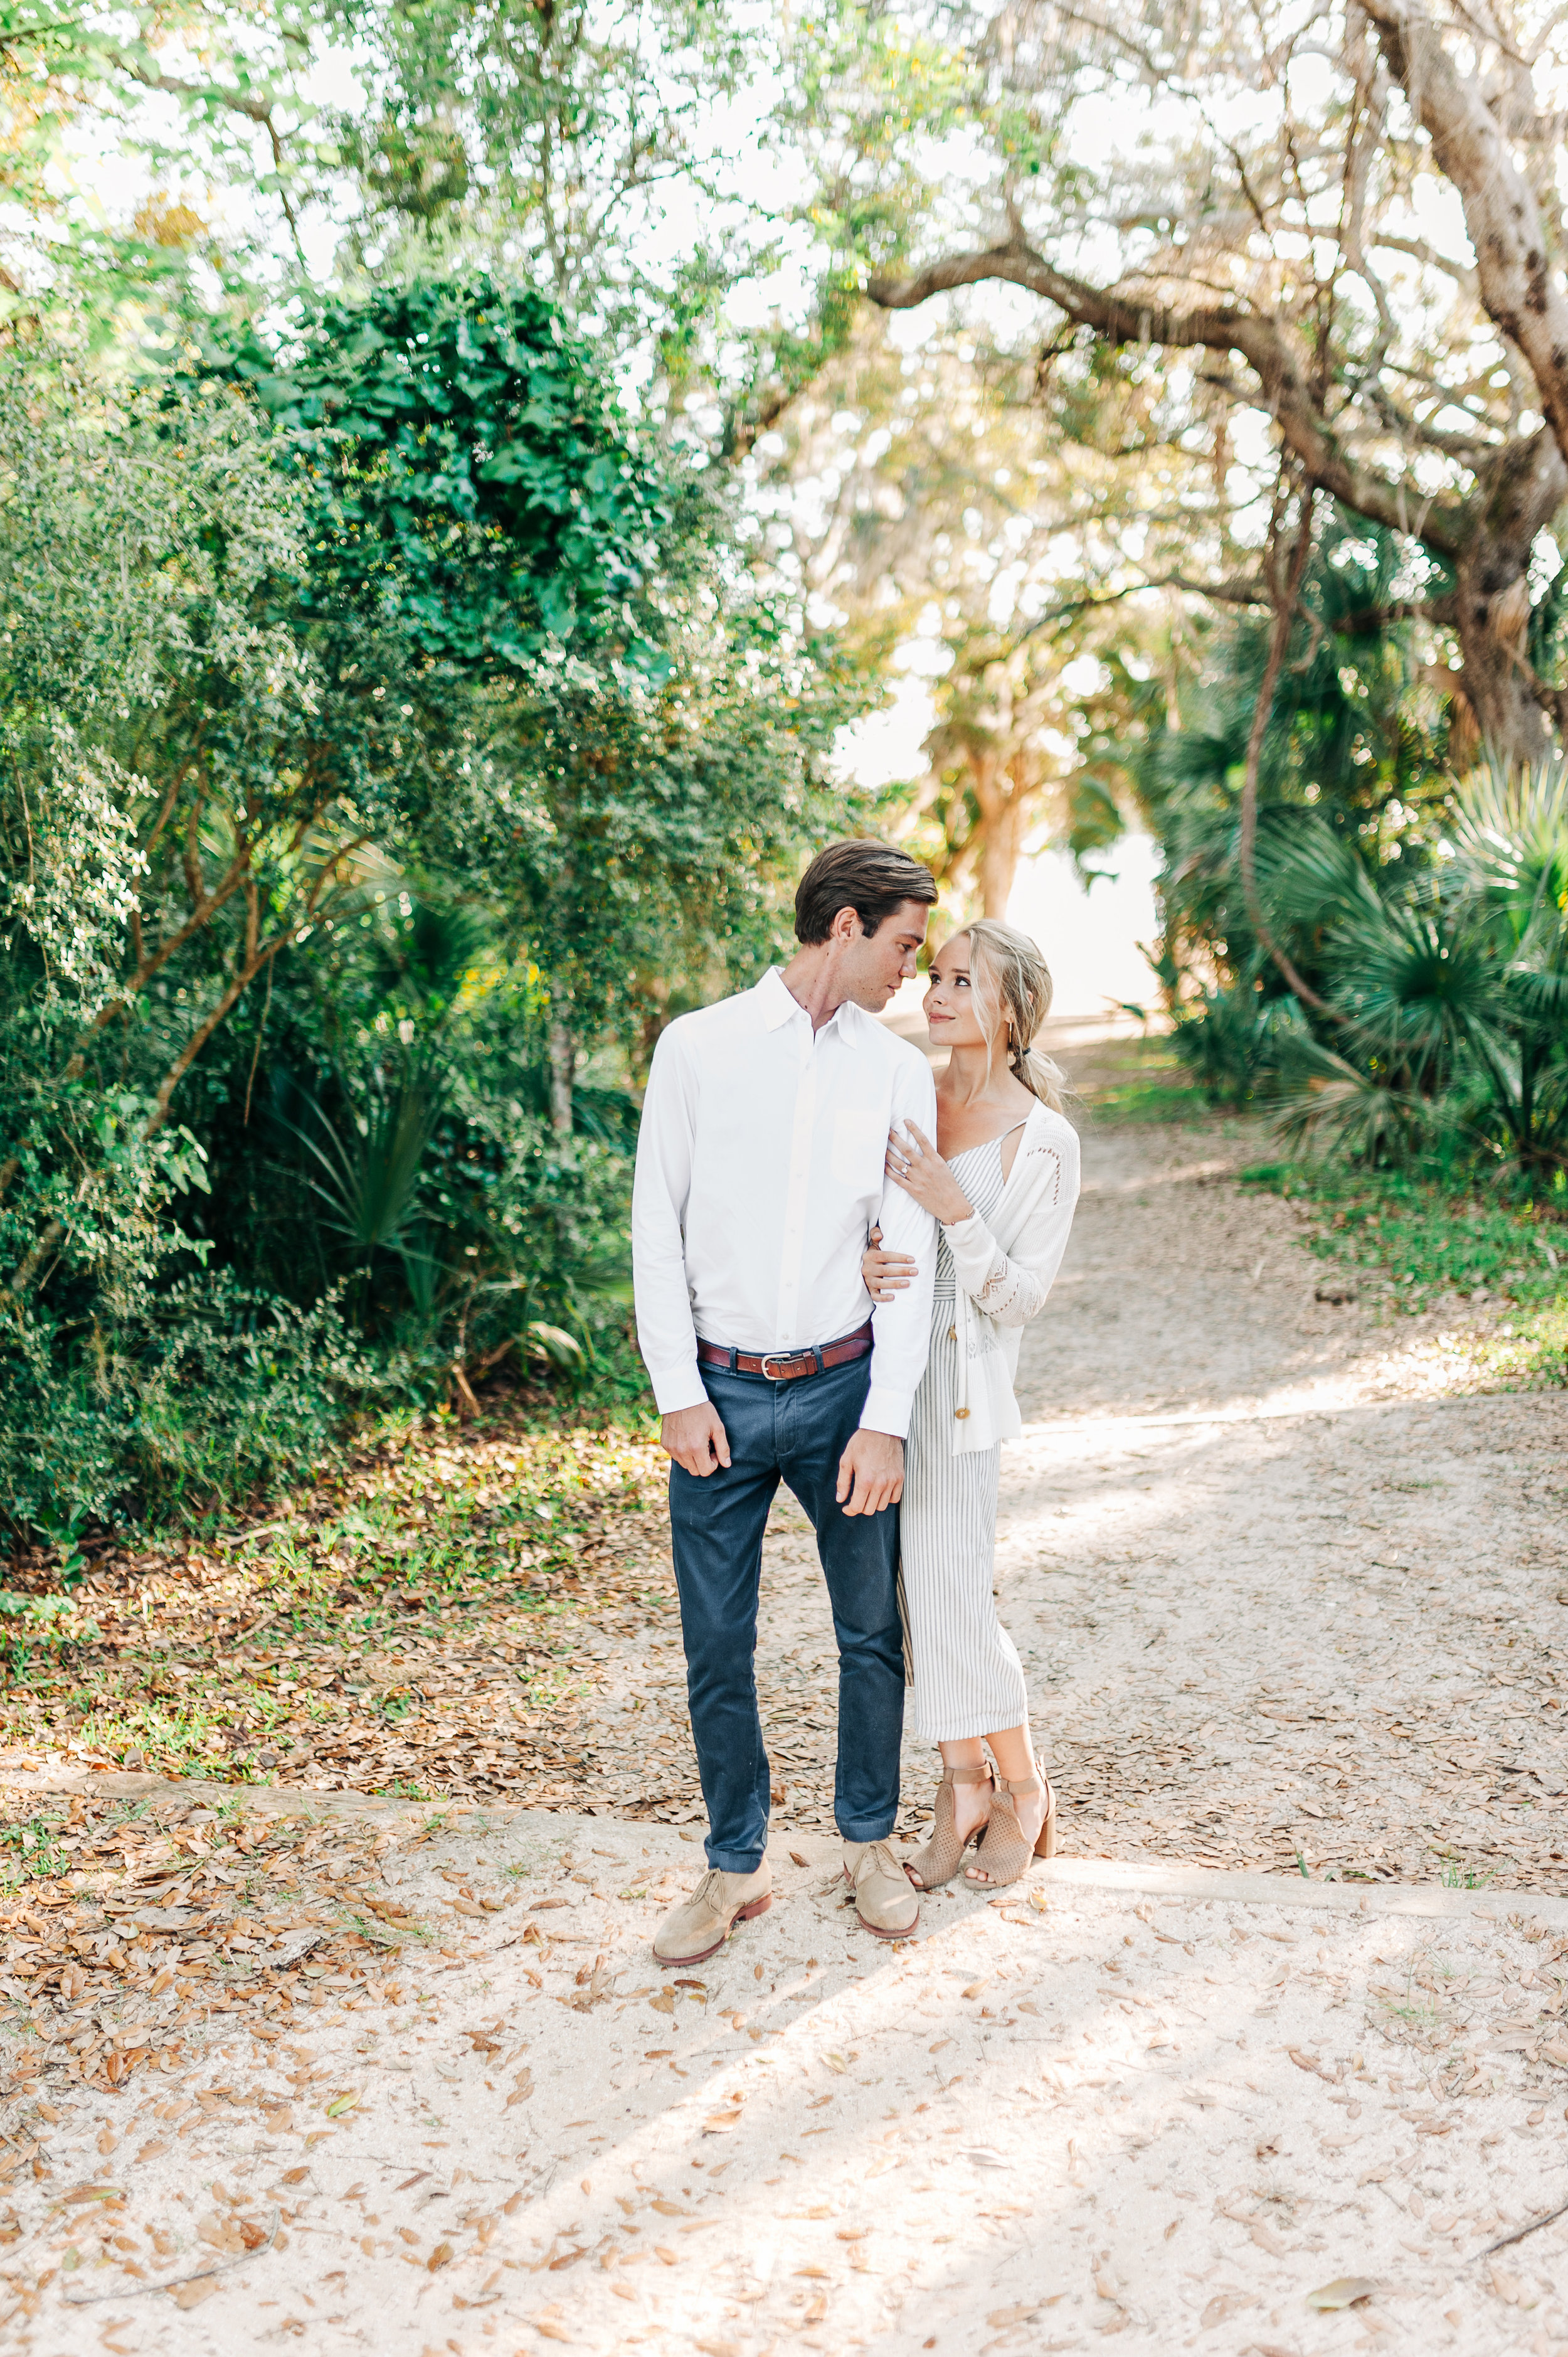 engagements - Druzy Collection- 1 Hour |$500Opalite Collection- 2.5 Hours |$650Amethyst Collection-2.5 Hours-2 Locations|$850EACH SESSION INCLUDESAshley as your photographerYour choice of locationStyle GuideLocation & Outfit PlanningPrint Release50 Minimum High Resolution ImagesOnline GalleryNot Included |Park Entrance Fees|Permits|Travel Fees